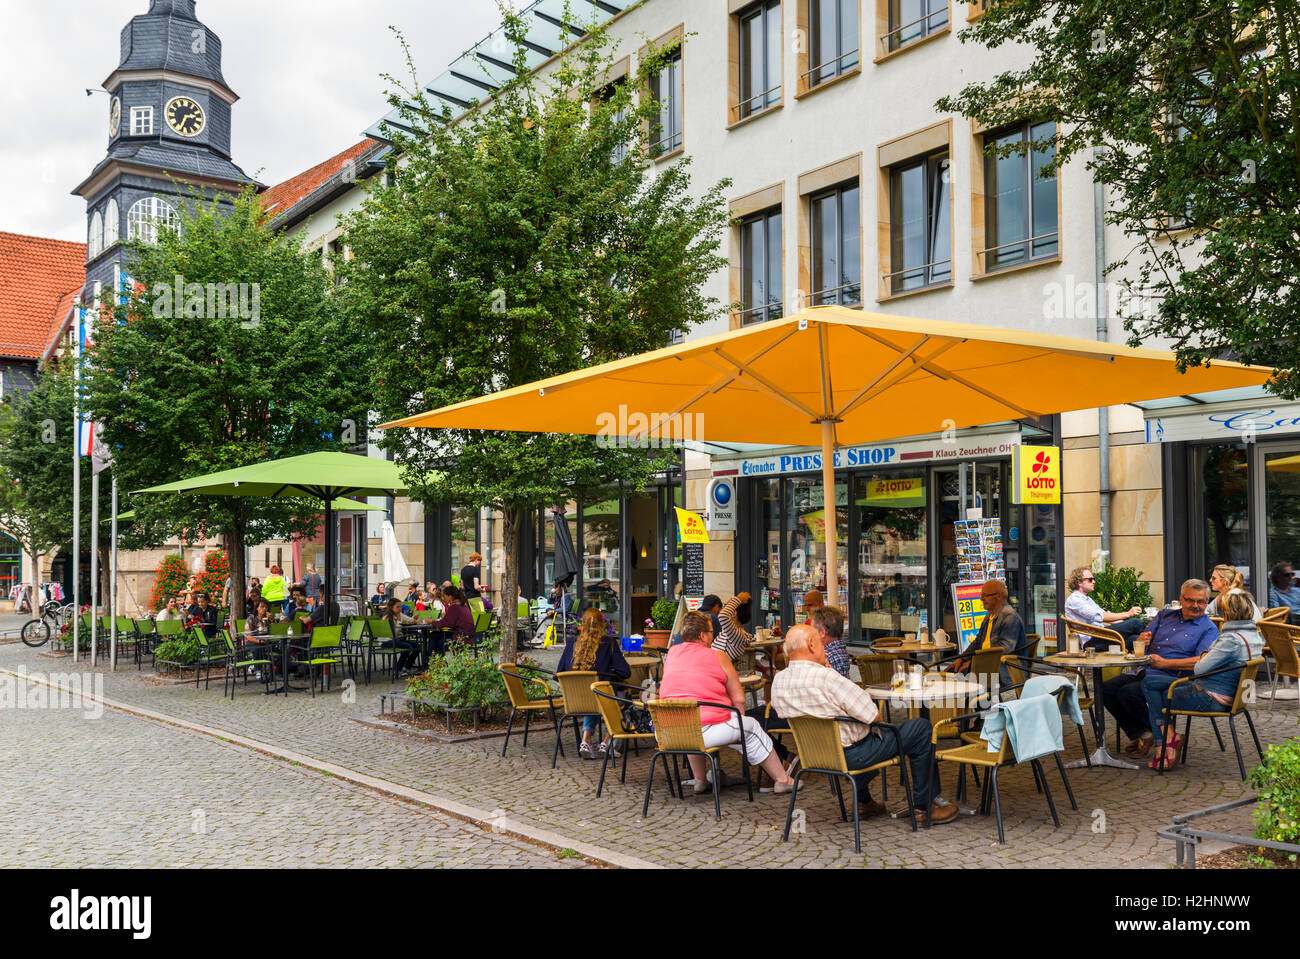 Pavement cafe in the town centre, Markt, Eisenach, Thuringia, Germany - Stock Image